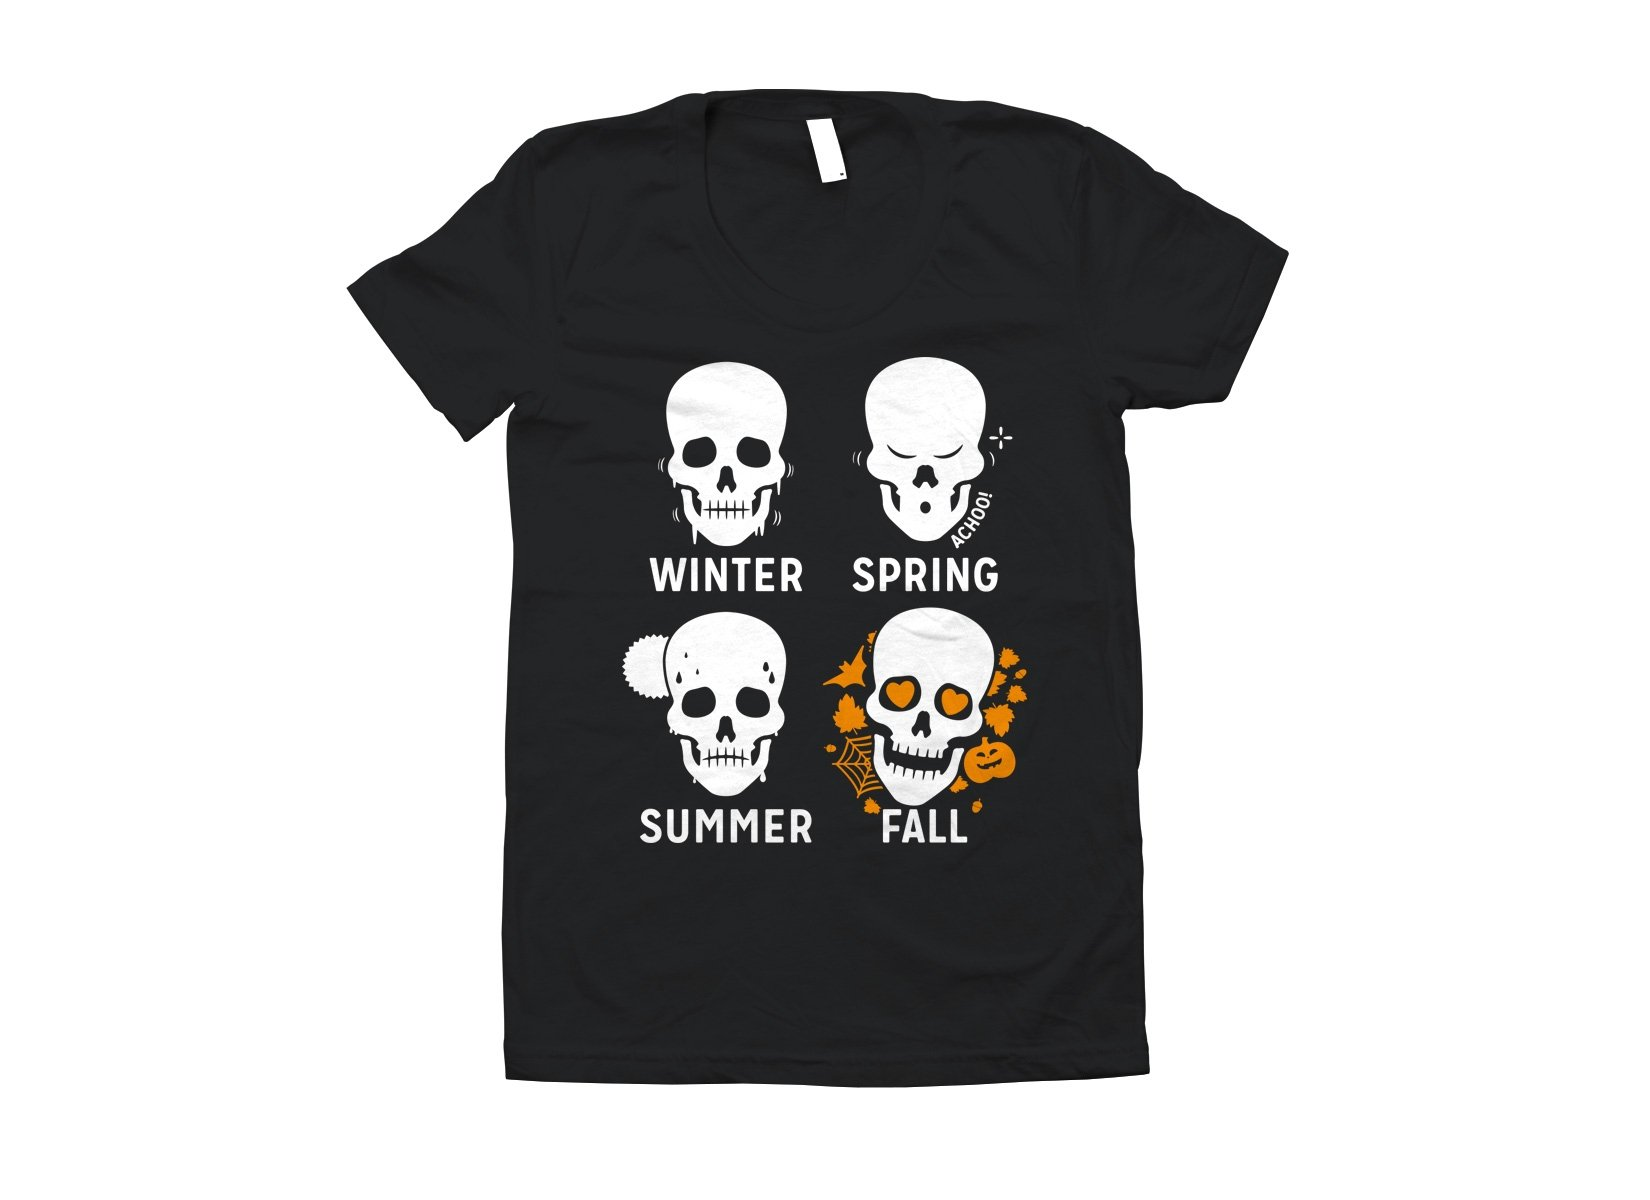 Four Seasons on Juniors T-Shirt